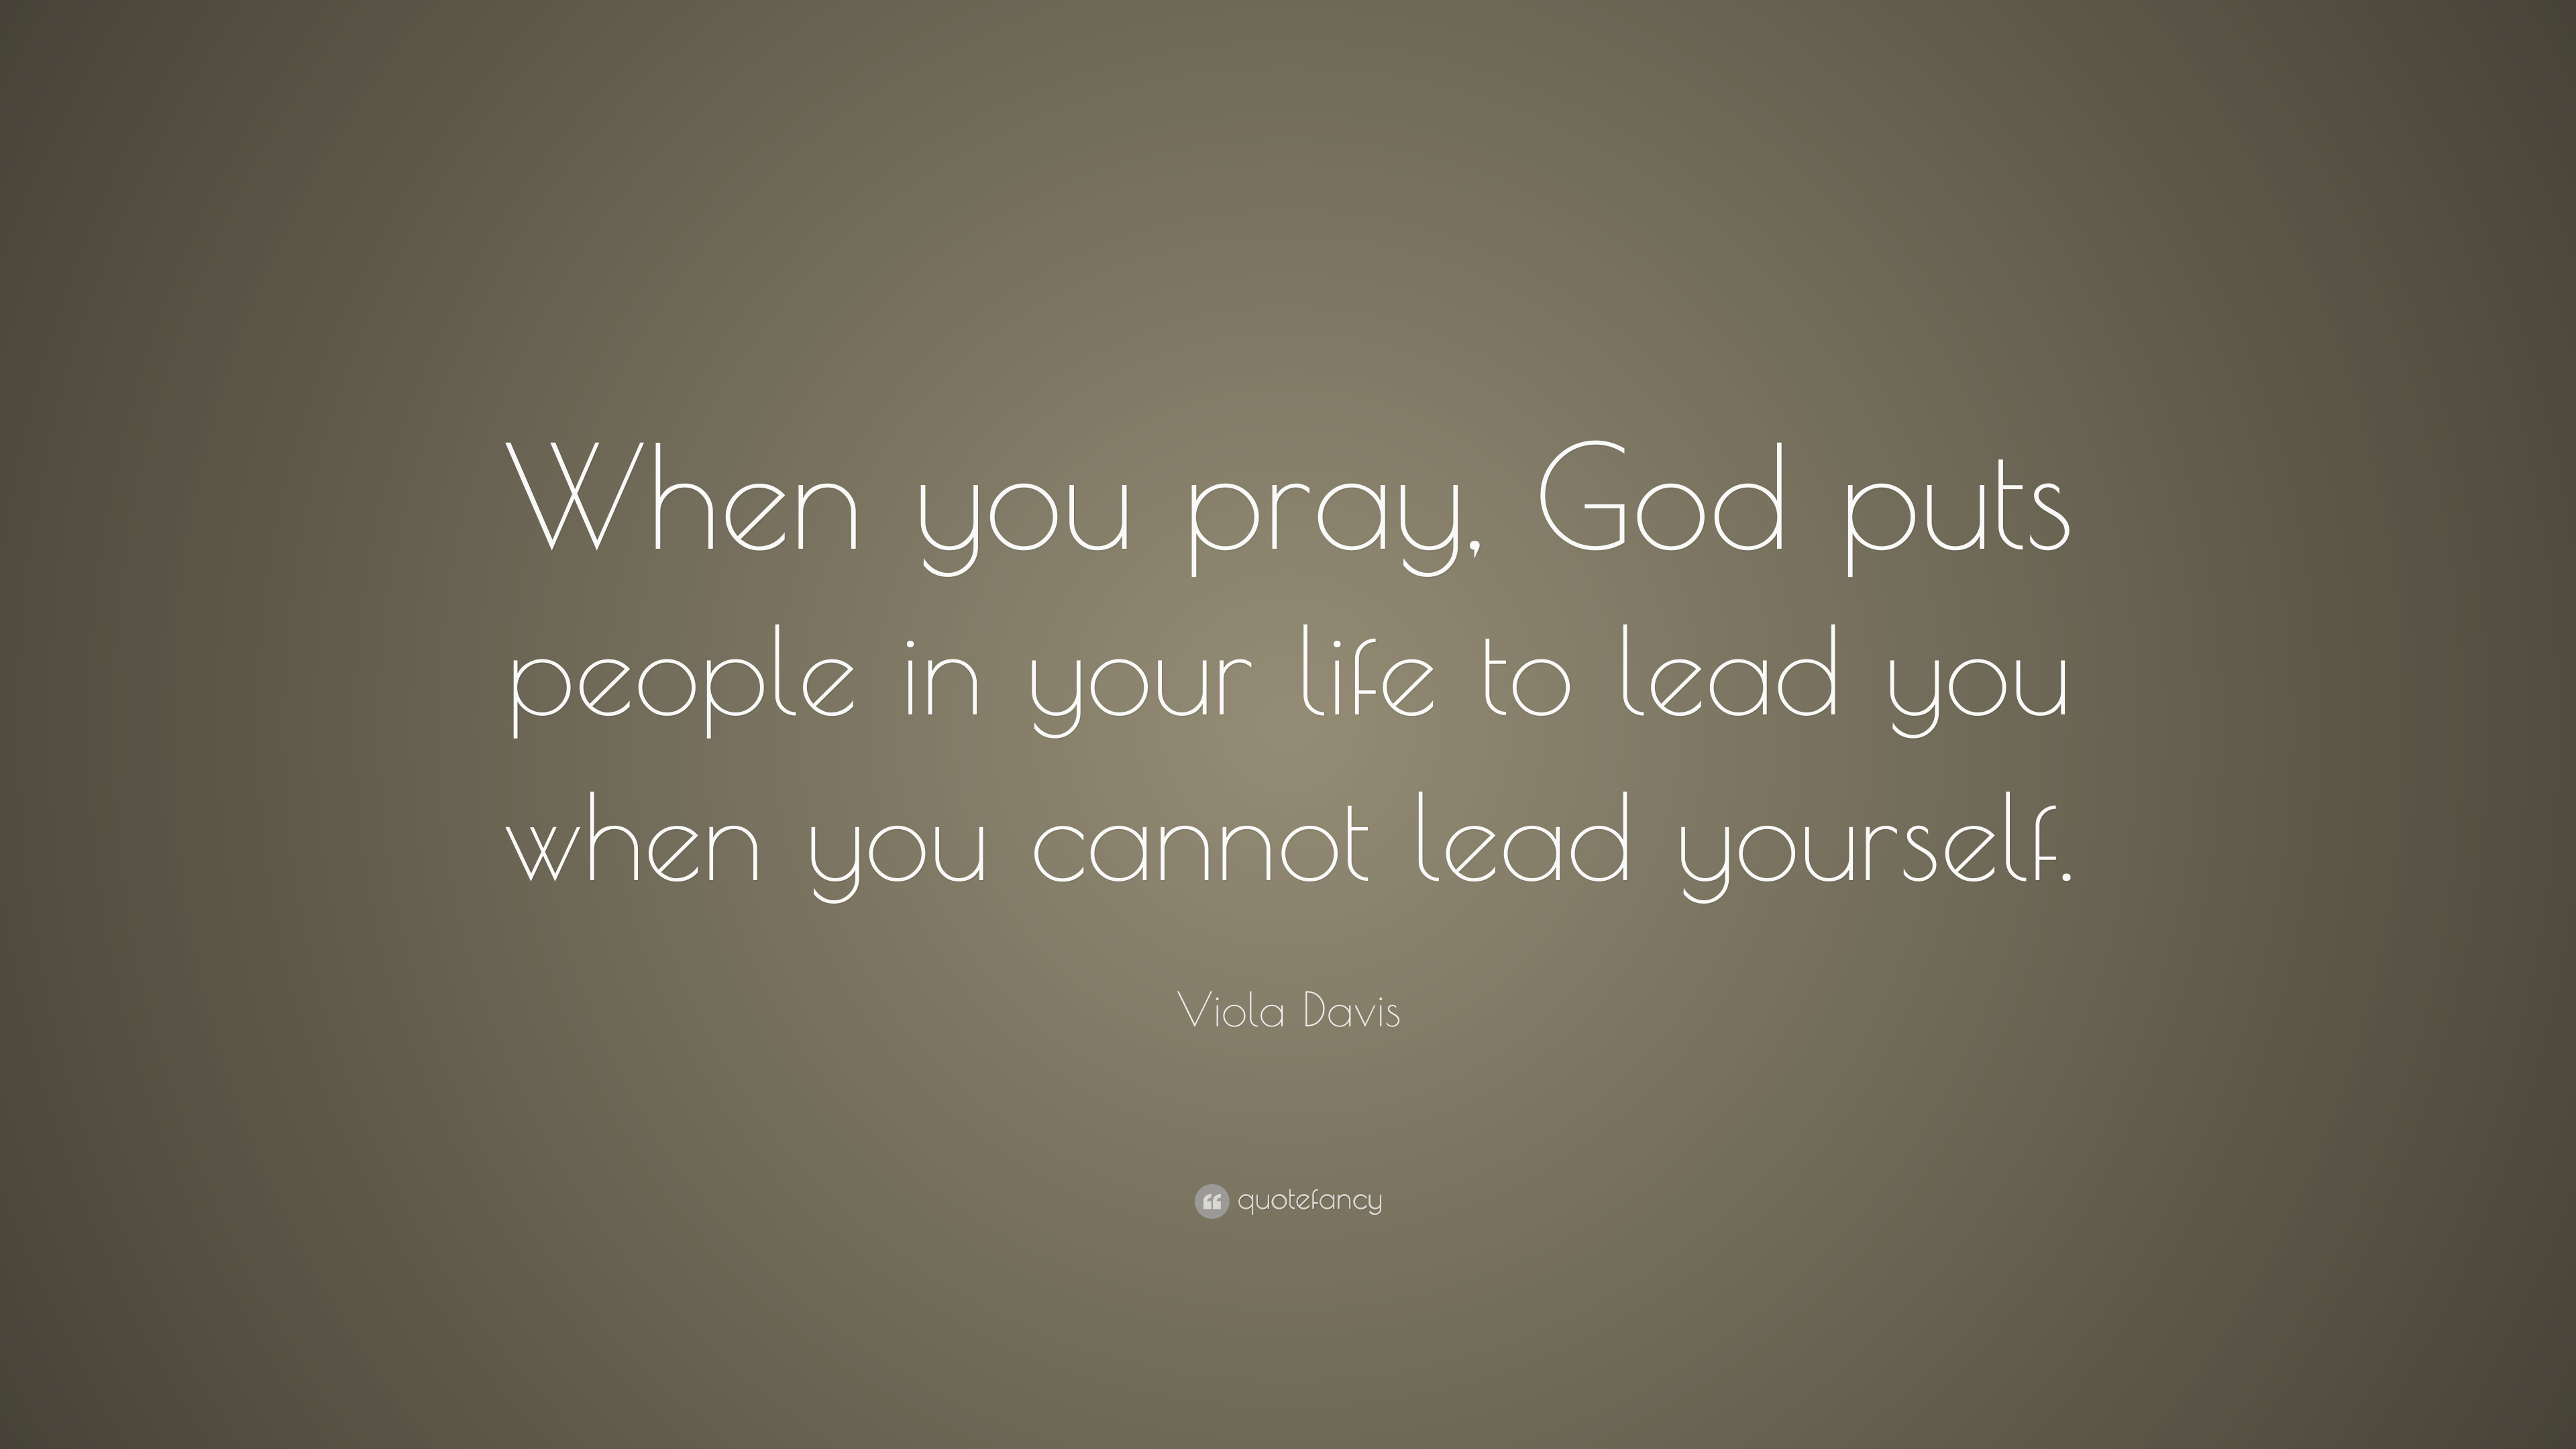 Viola Davis Quote: When you pray, God puts people in your